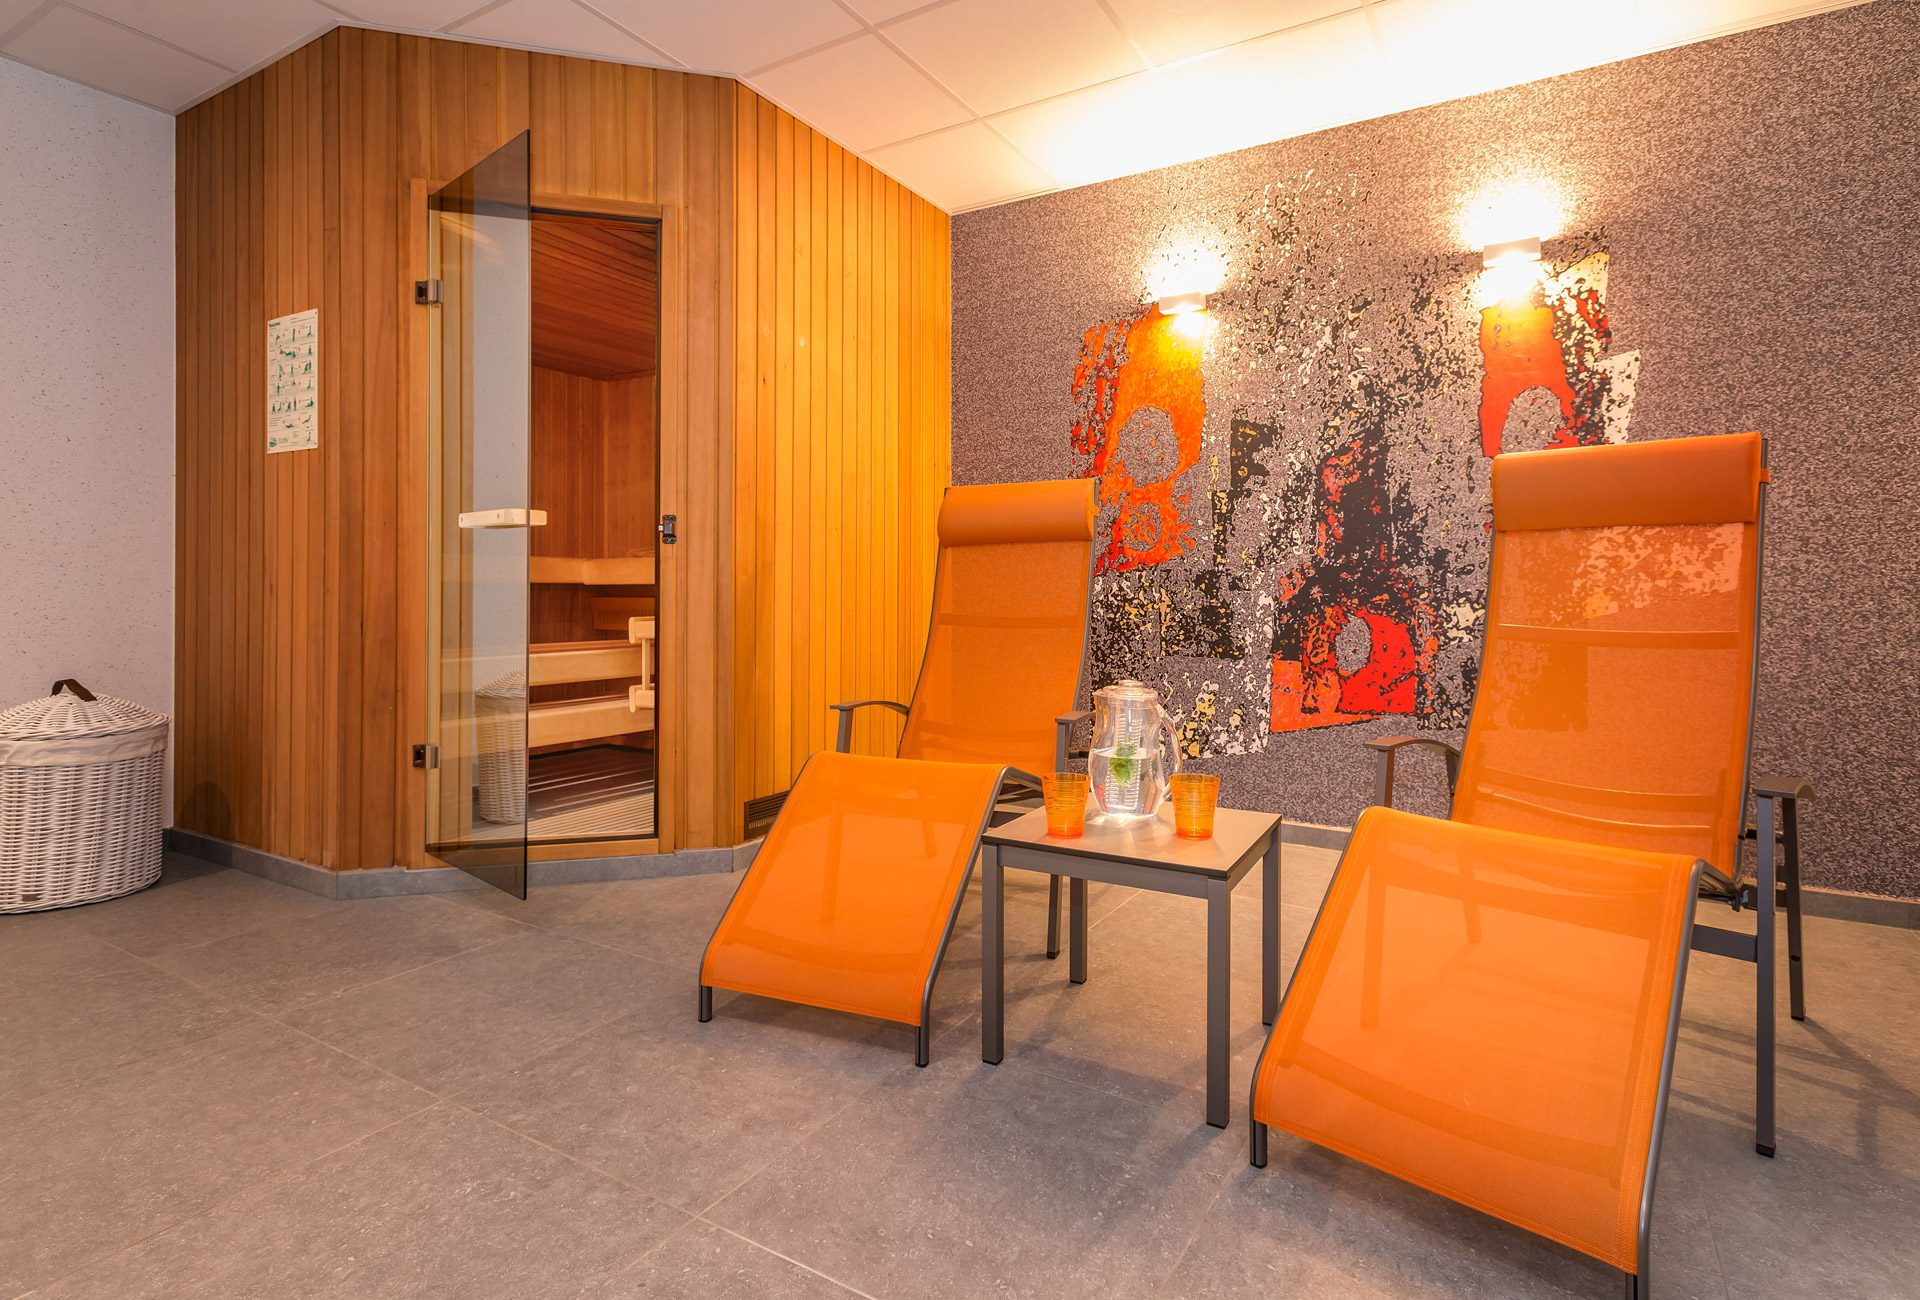 Wellness hotel adagio for Hotel adagio londres